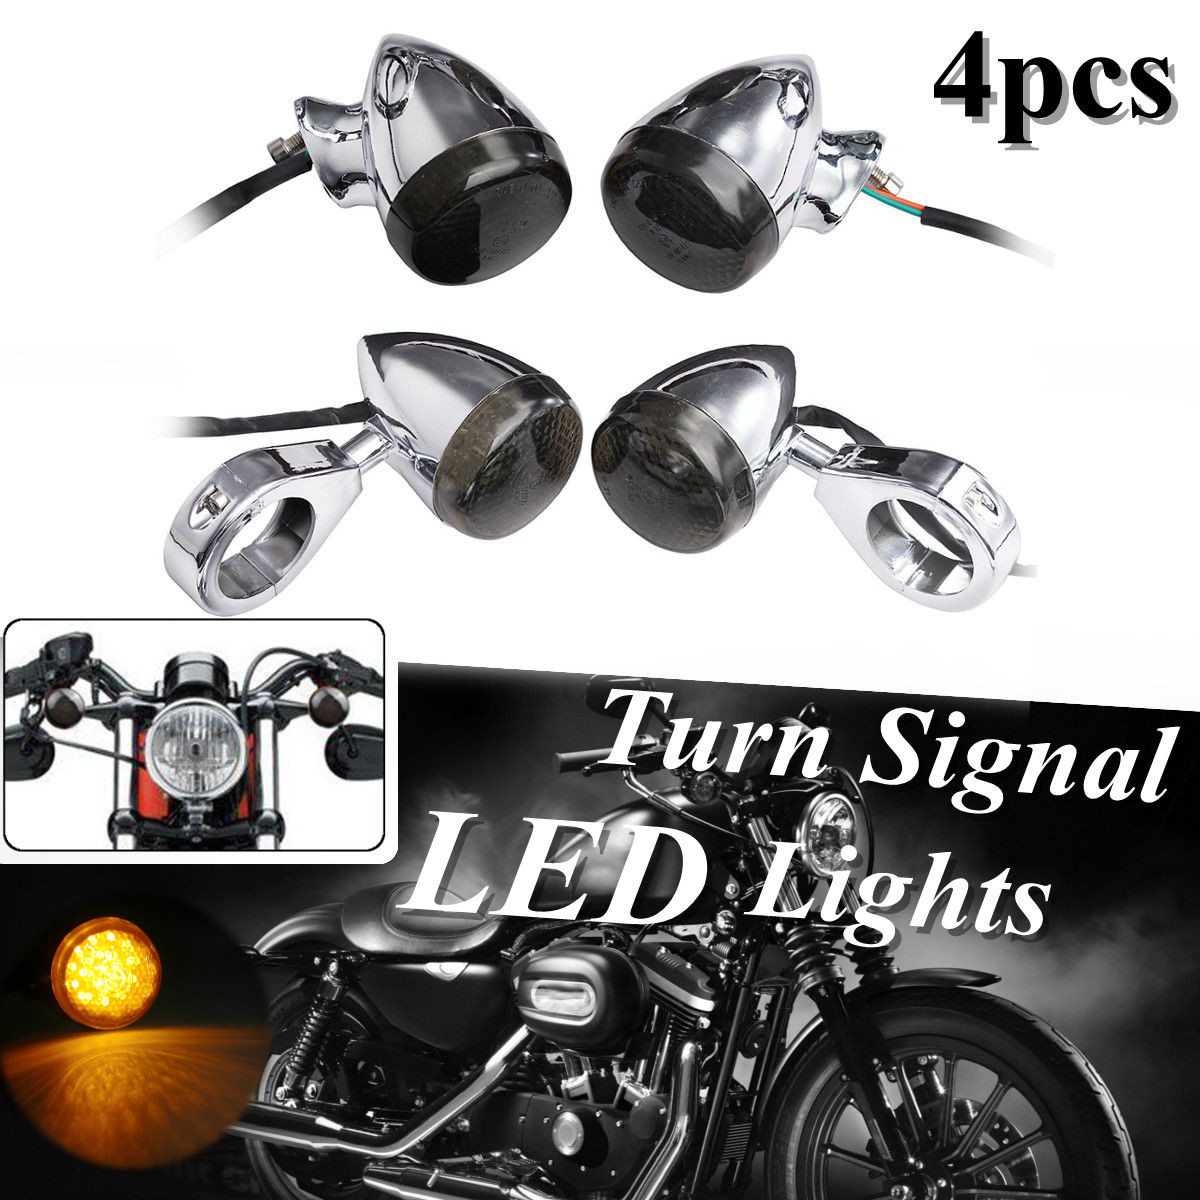 4 Pcs Front Rear Motorcycle LED Turn Signal Indicator Light For Davidson Sportster/Dyna Motorbike With 39mm Fork Tube